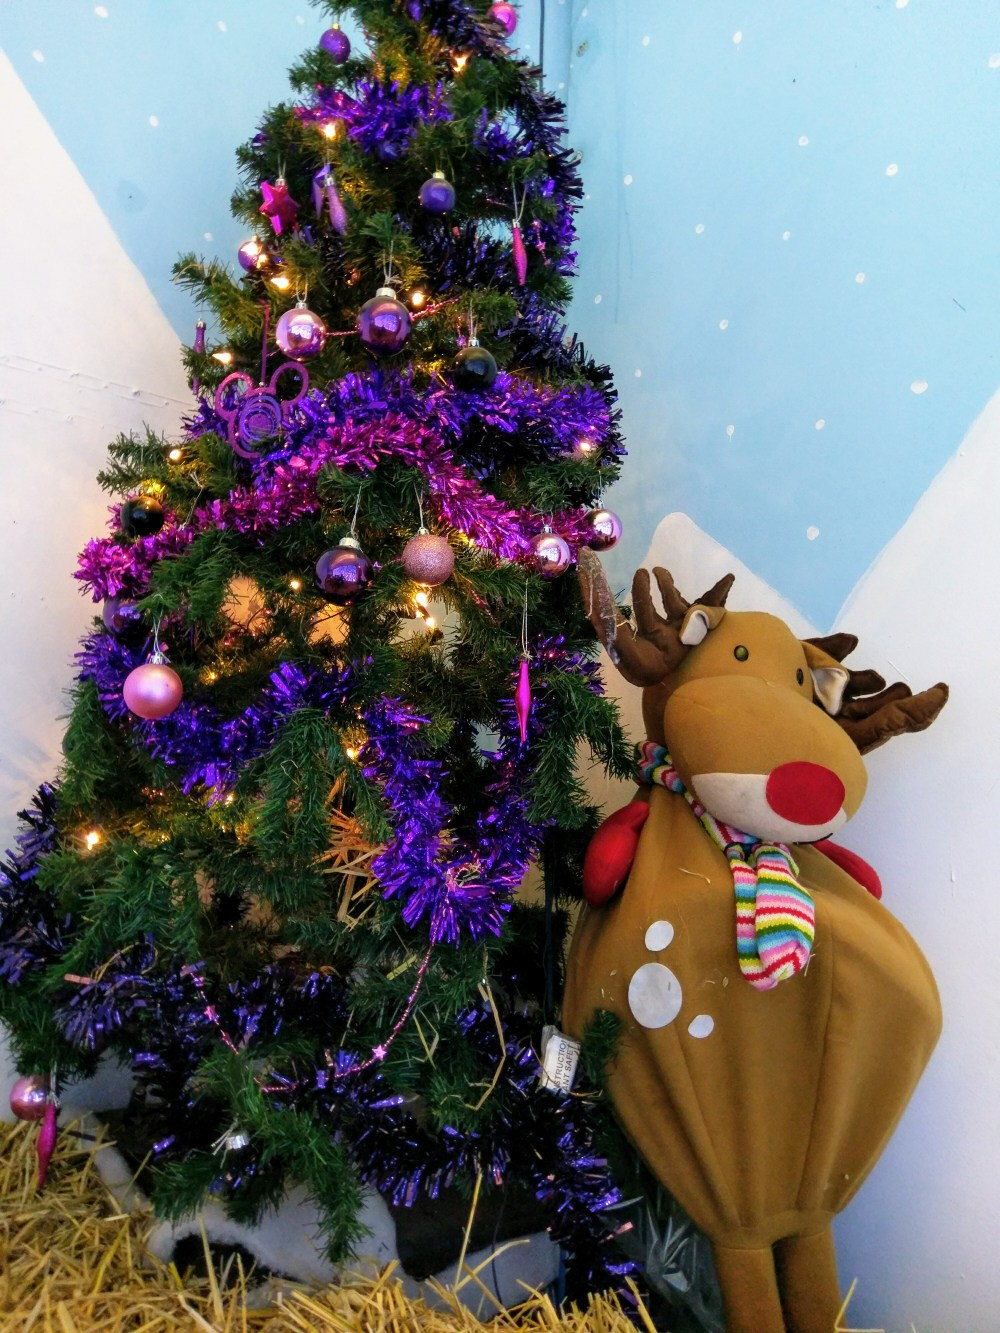 A Christmas tree, decorated in mostly purple decorations. Next to the tree is a model reindeer.